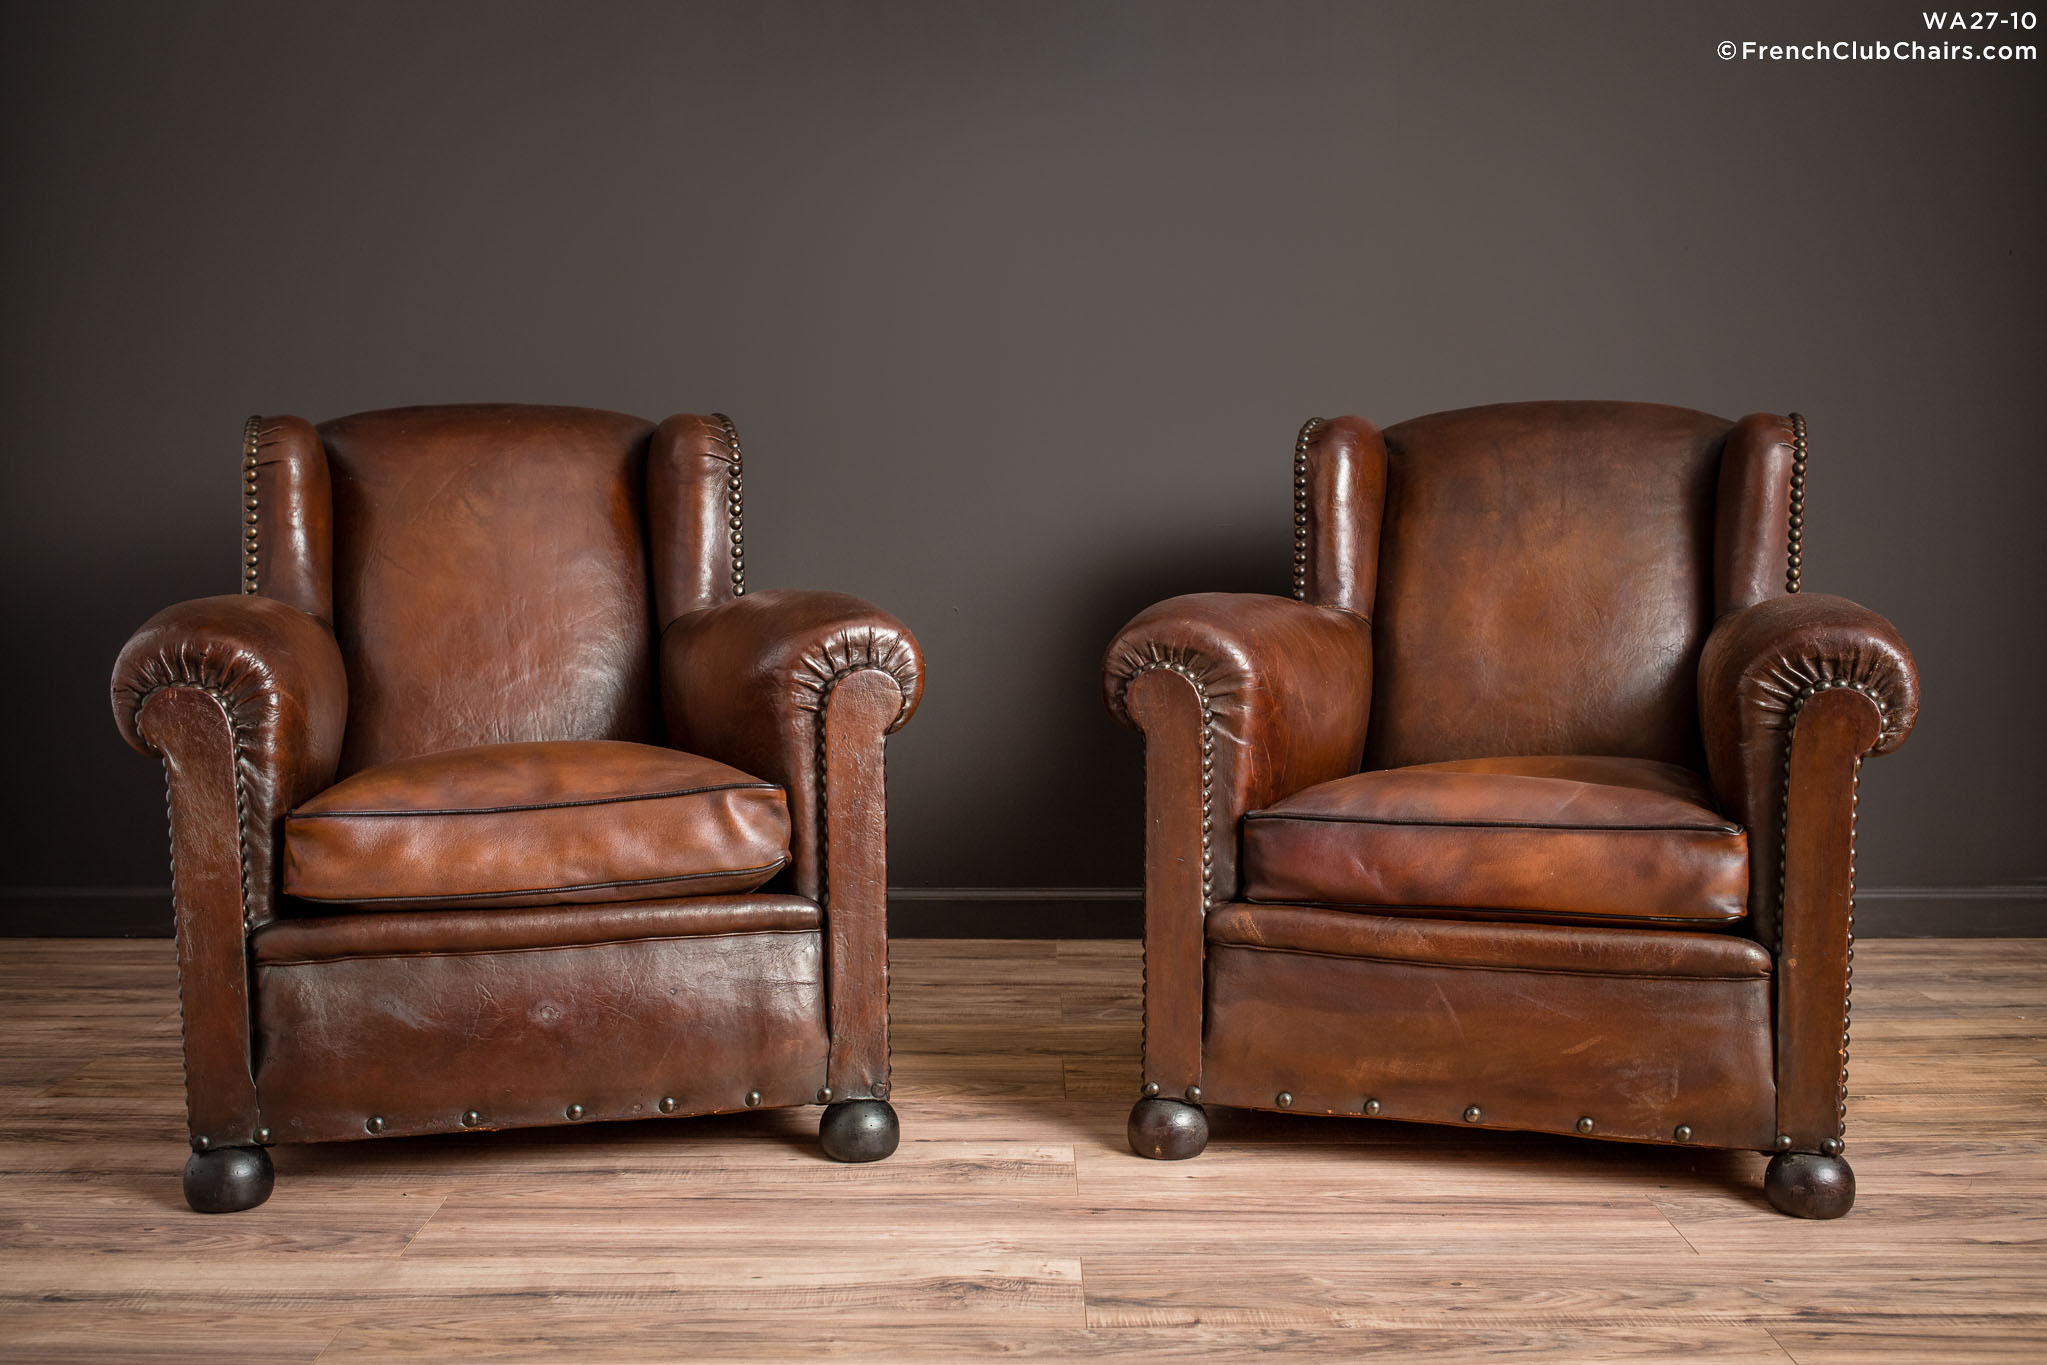 WA_27-10_The_Kings_Wingback_Pair_R_1TQ-v01-williams-antiks-leather-french-club-chair-wa_fcccom